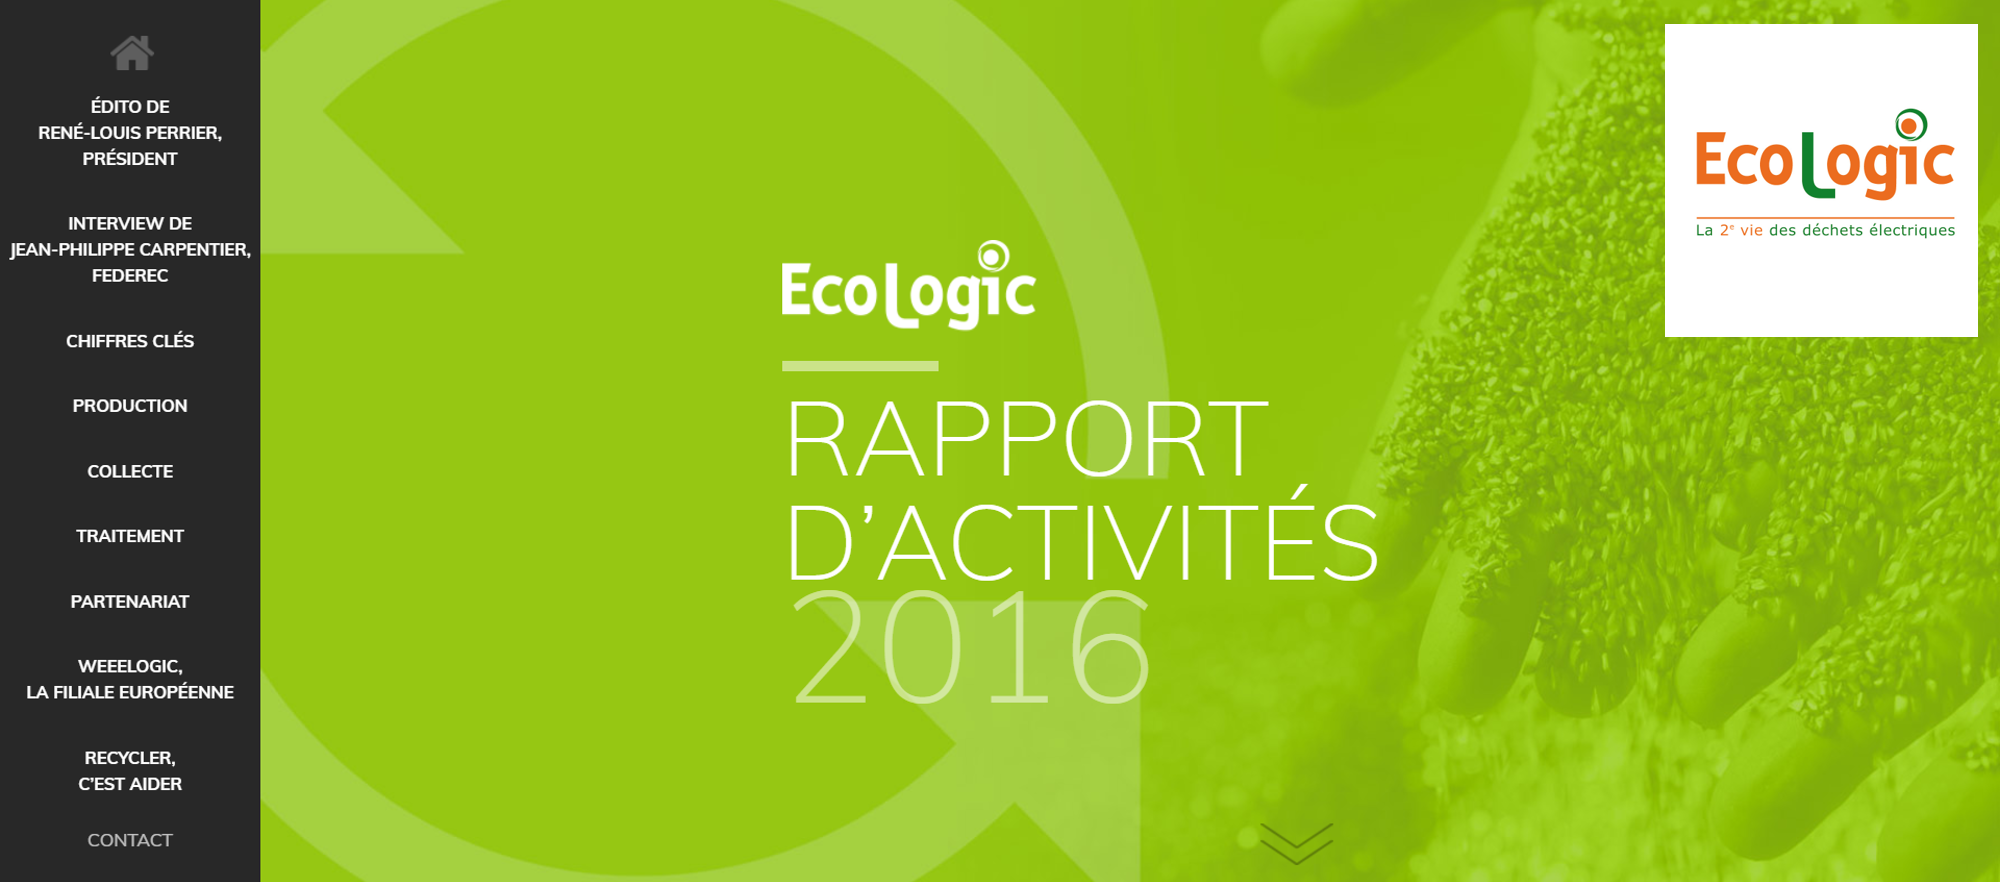 annual report ecologic 2016